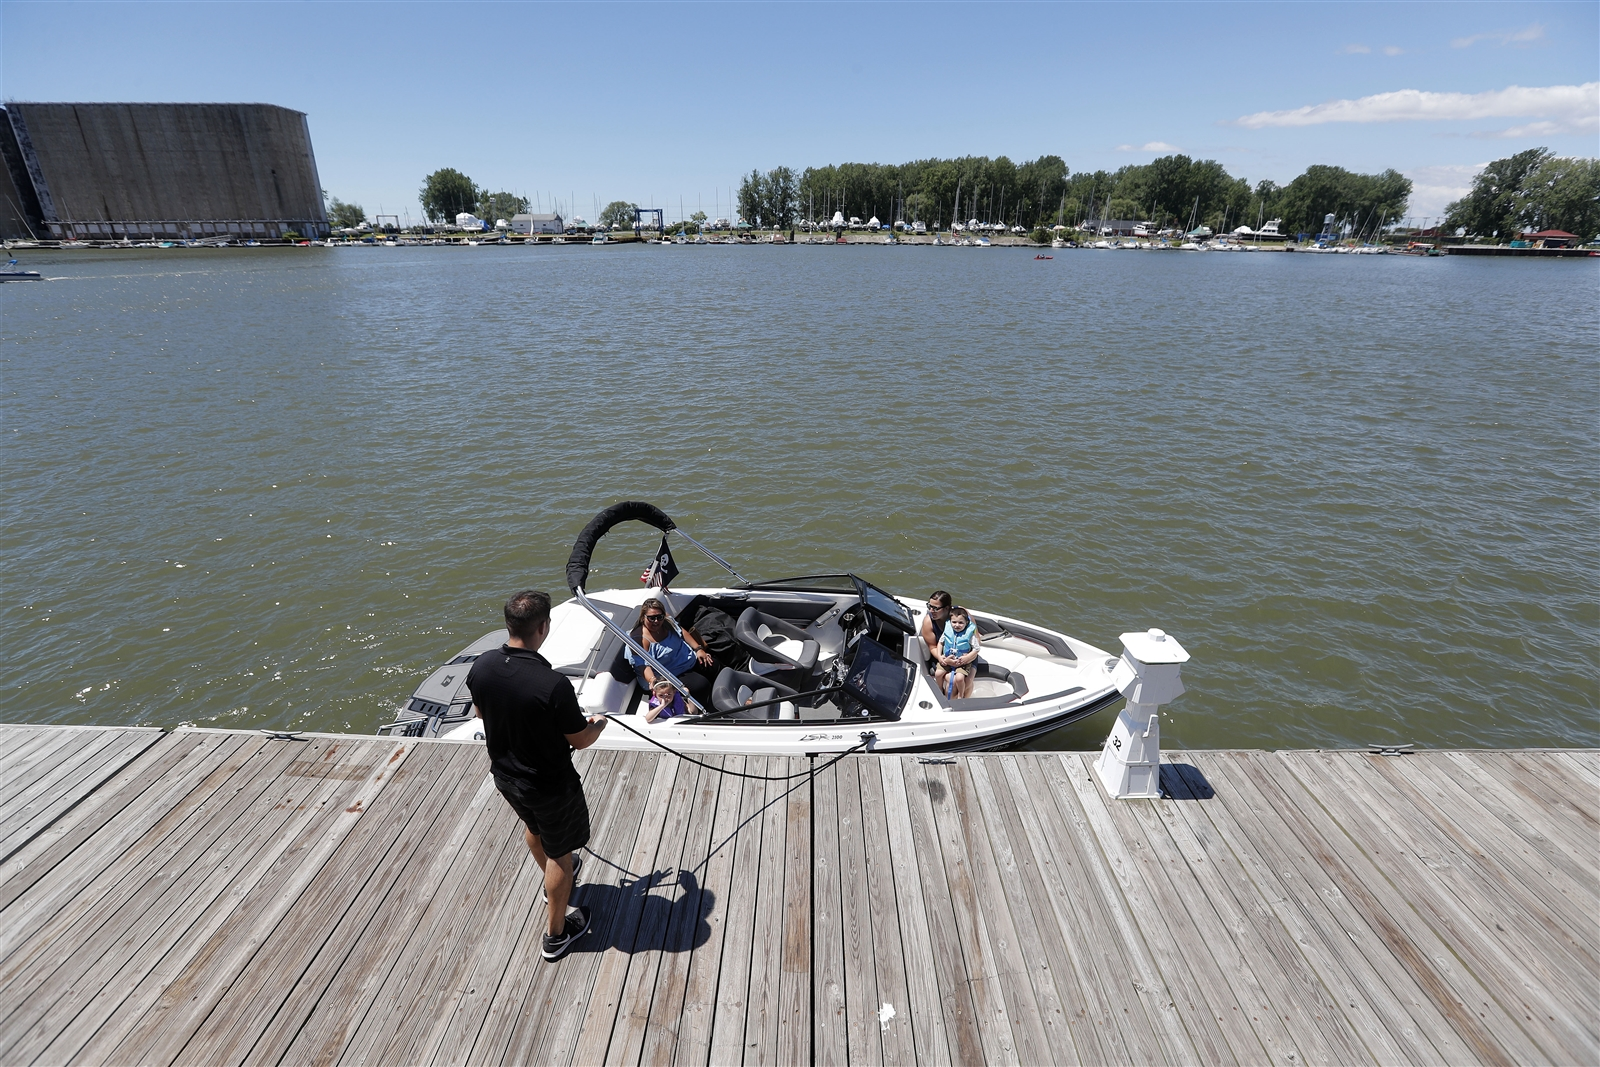 Nick Poblocki unties his boat to take his family out for a ride at Canalside on the official first day of summer in Buffalo Wednesday, June 21, 2017.